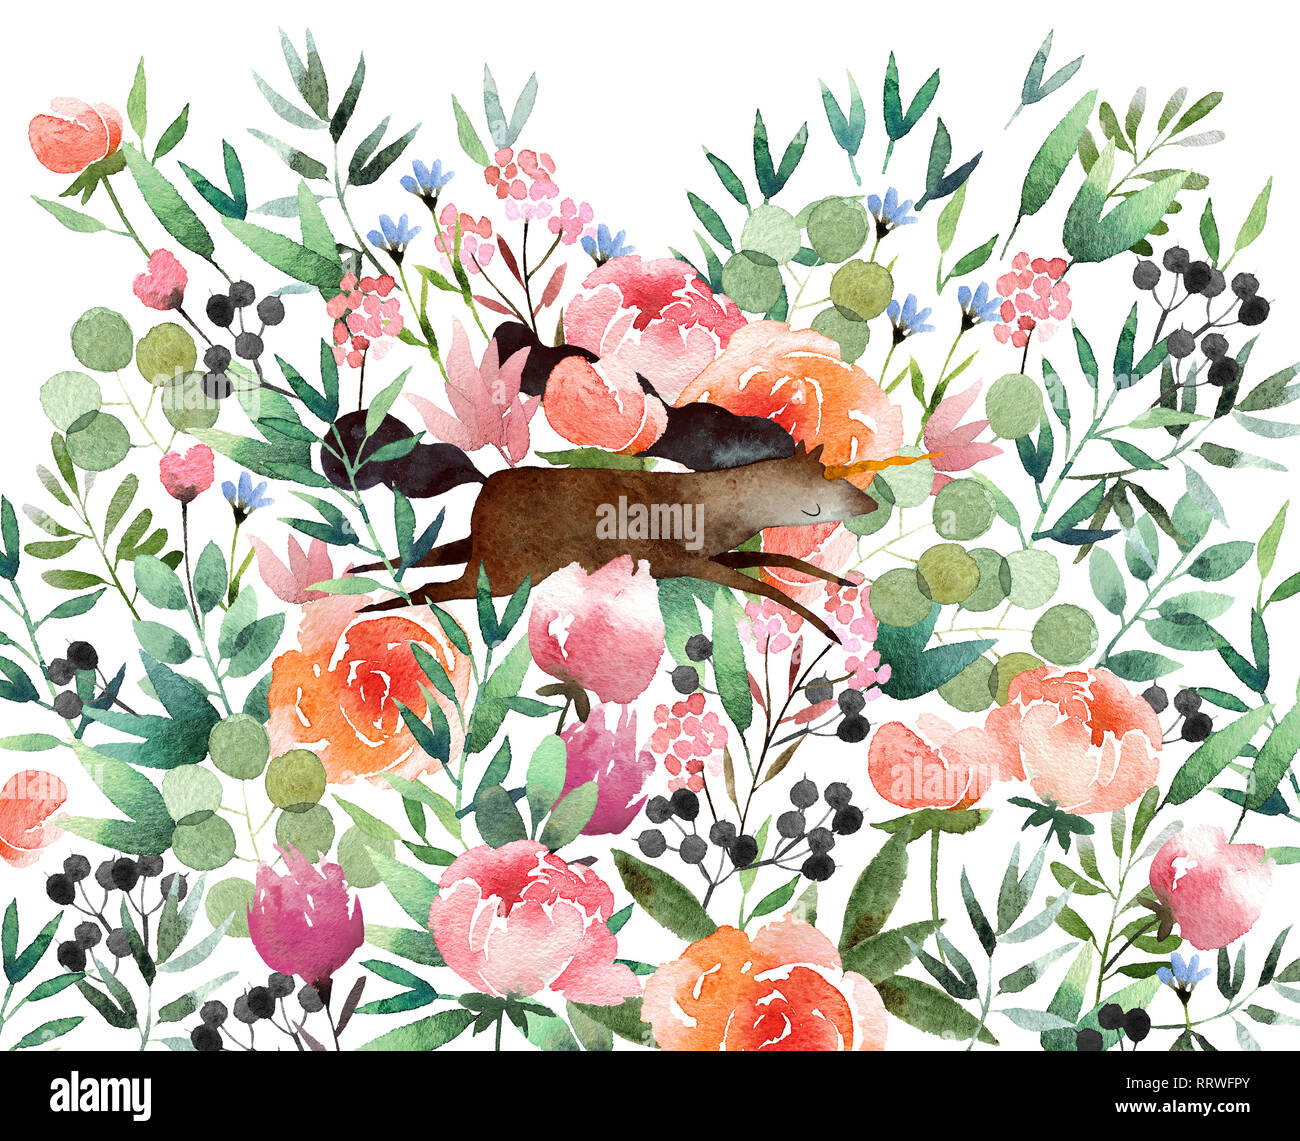 Beautiful watercolor flower background with unicorn isolated on white background. Floral watercolor background for design, postcards, banners, emblems Stock Photo